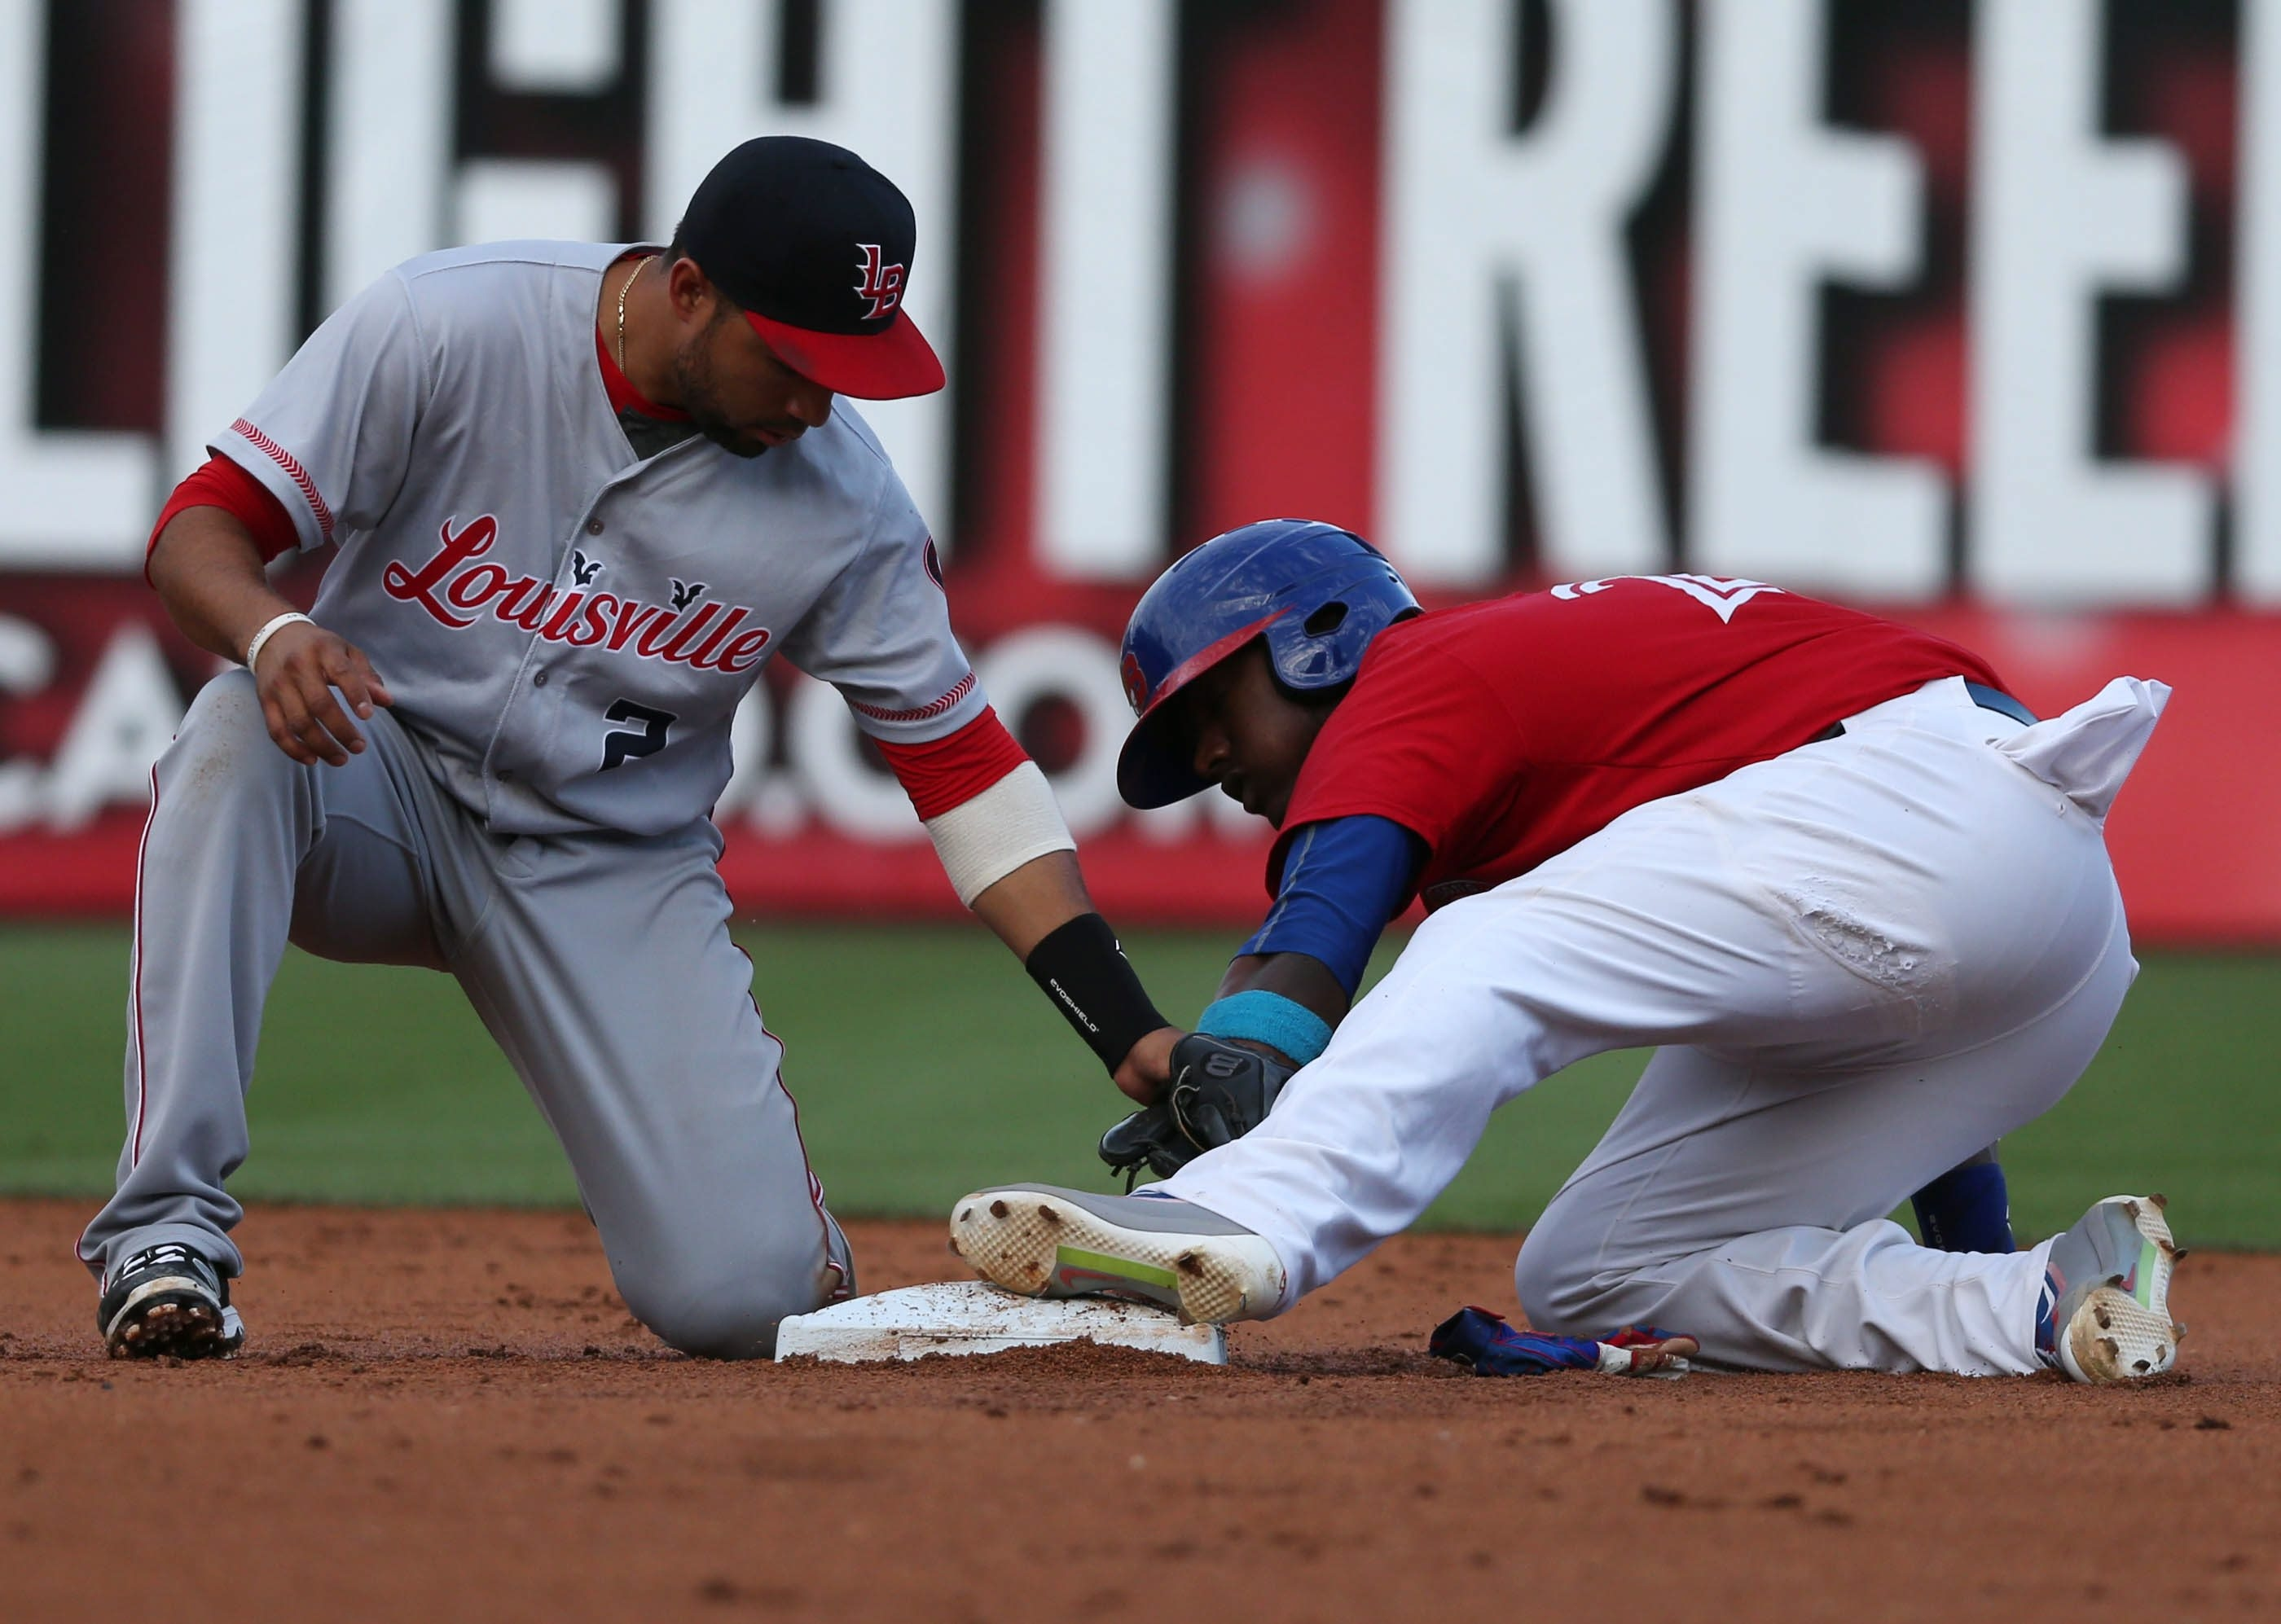 Junior Lake of the Bisons steals second, beating the tag by Louisville's Herman Iribarren in Wednesday night's game.